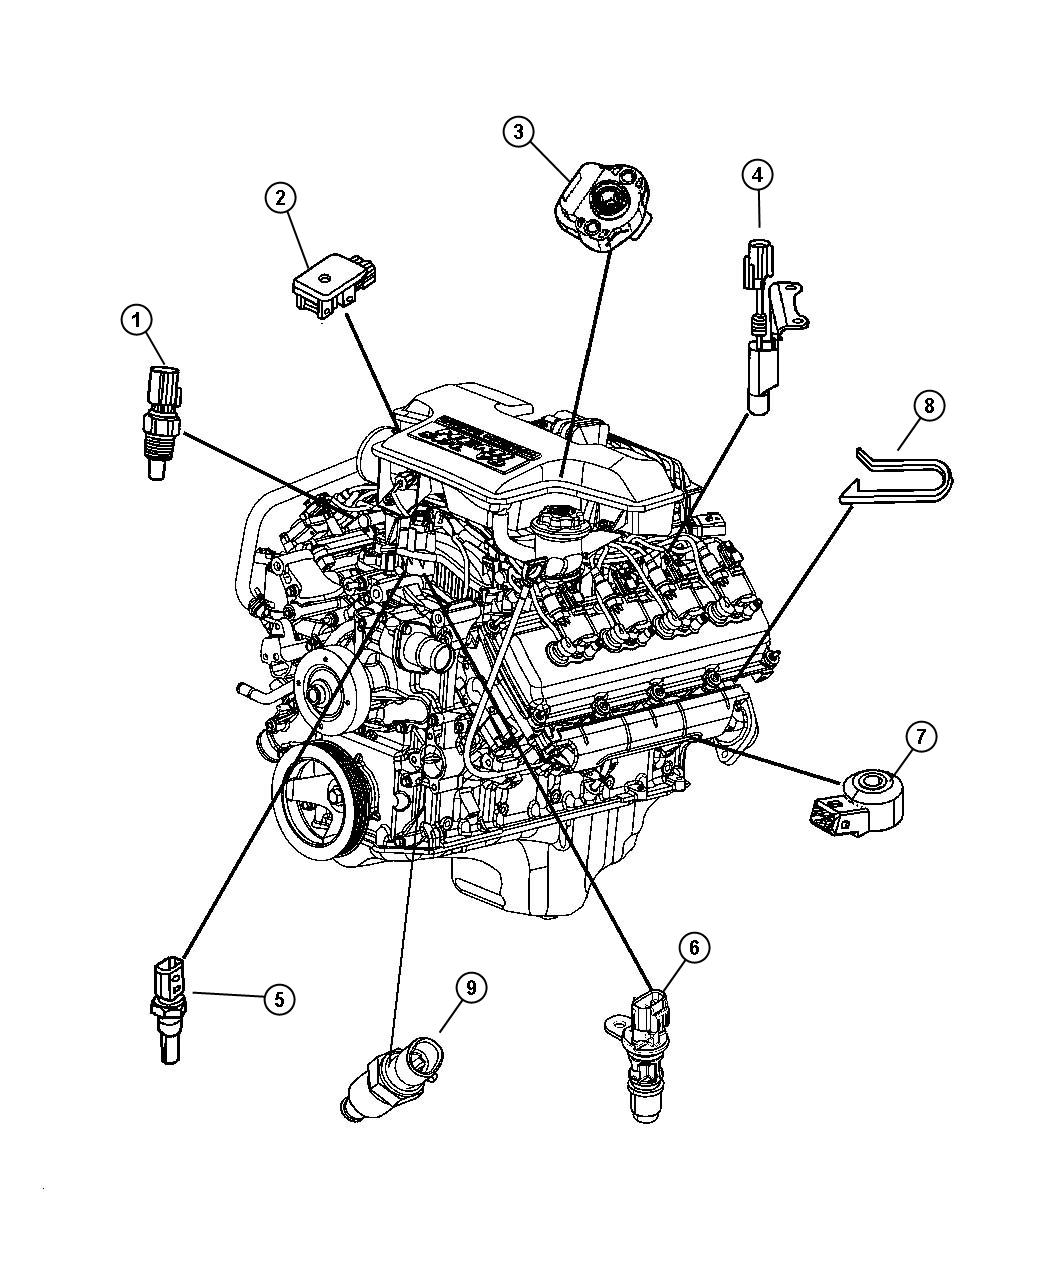 Dodge Challenger Sensor Crankshaft Position Engine